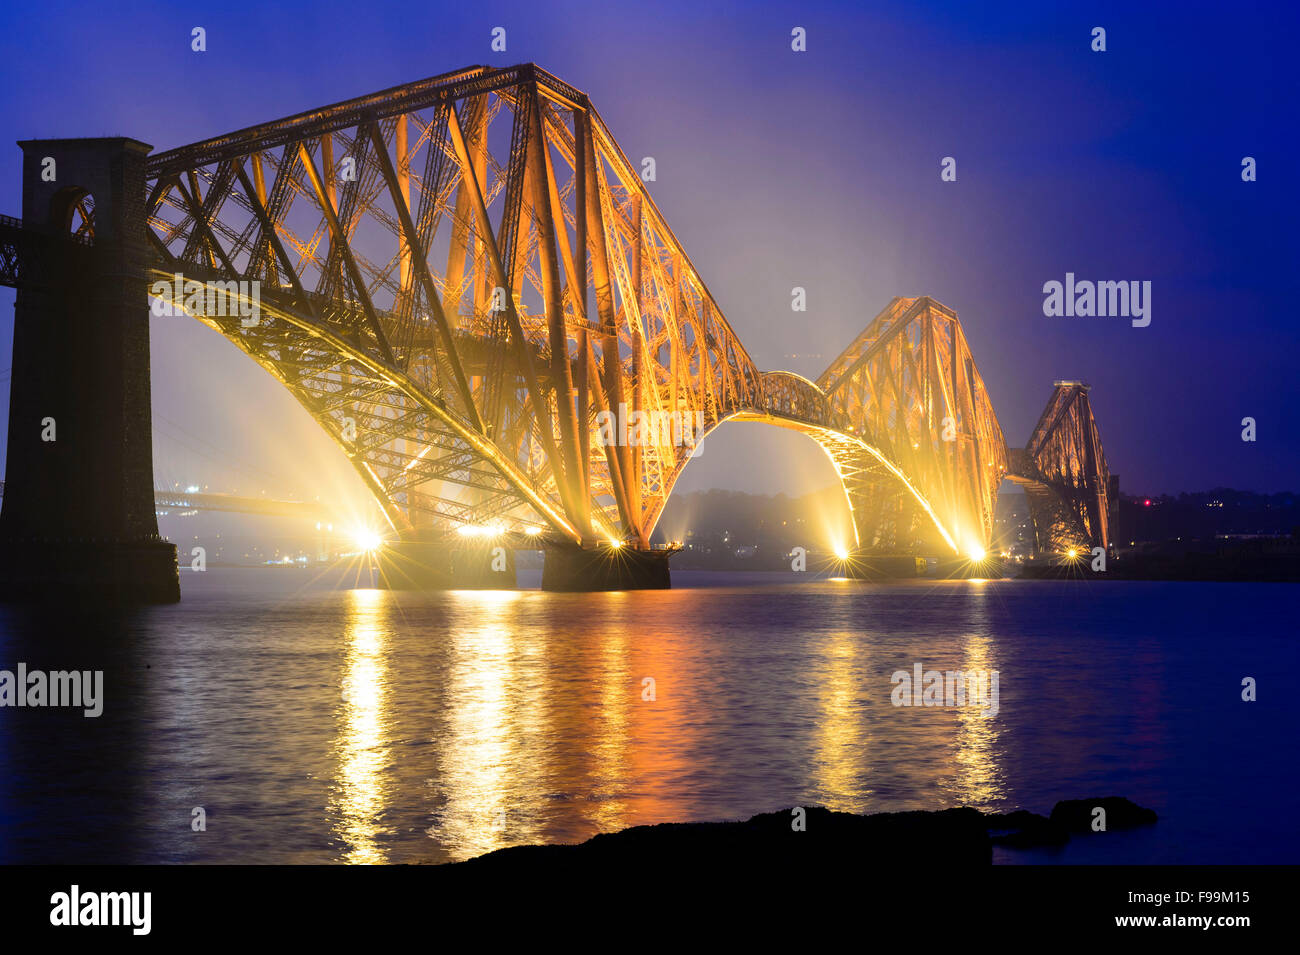 The Forth Rail Bridge during blue hour - Stock Image